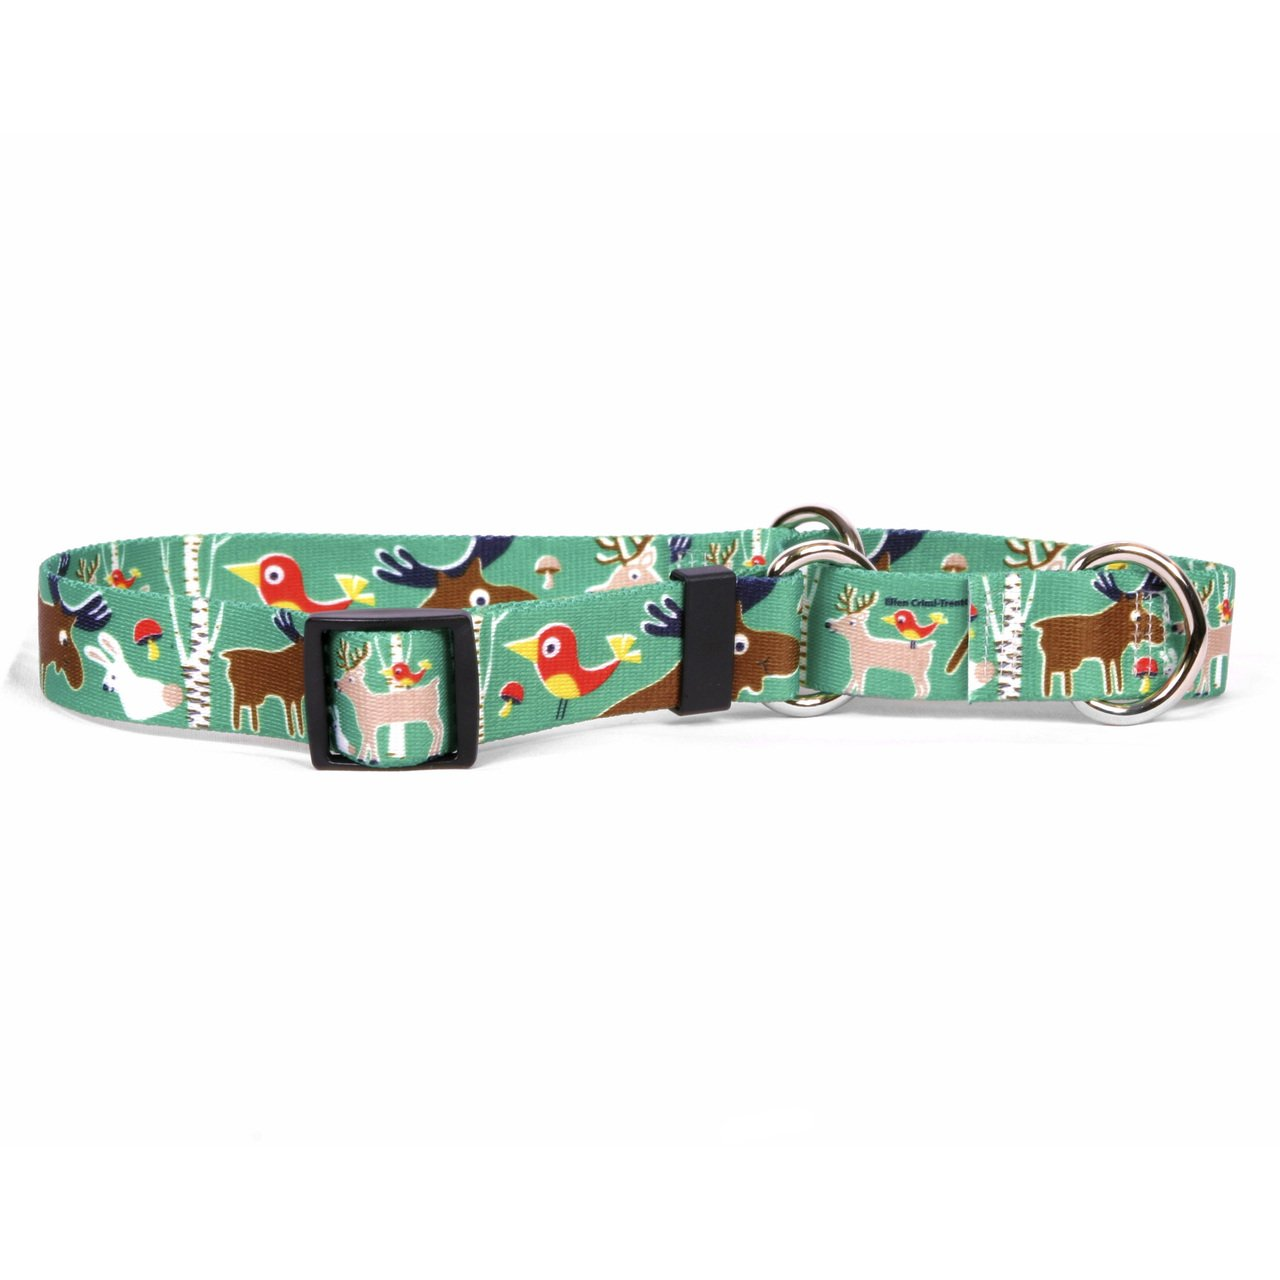 Yellow Dog Design Woodland Friends Martingale Dog Collar-Size Medium-1'' Wide and fits Neck 14 to 20''